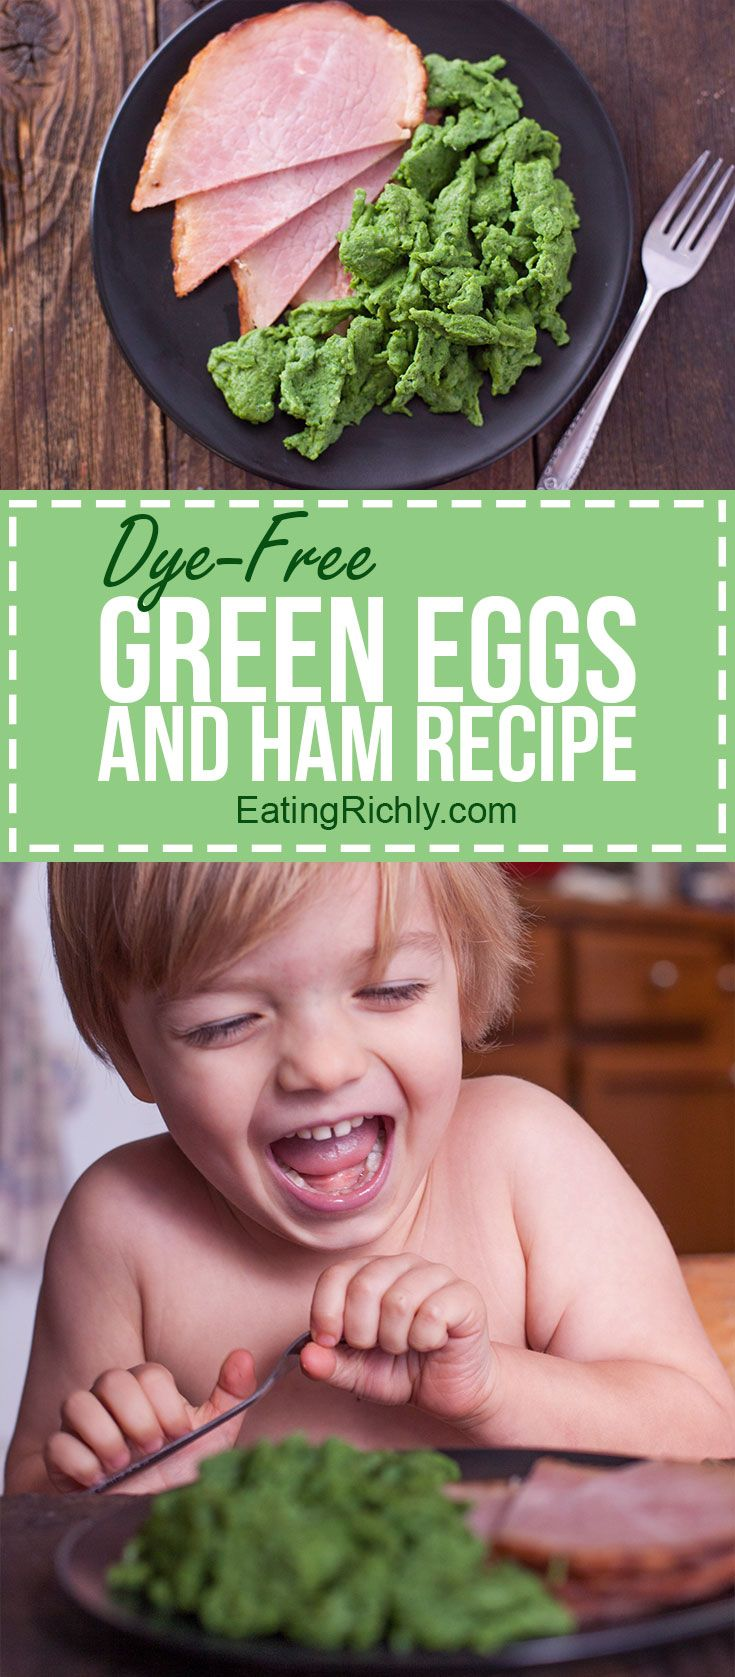 This naturally green eggs and ham recipe is a hit with kids and perfect for serving to your favorite Dr. Suess fan, or as a simple St. Patrick's Day breakfast. Totally dye-free! via @eatingrichly #greeneggsandhamrecipe